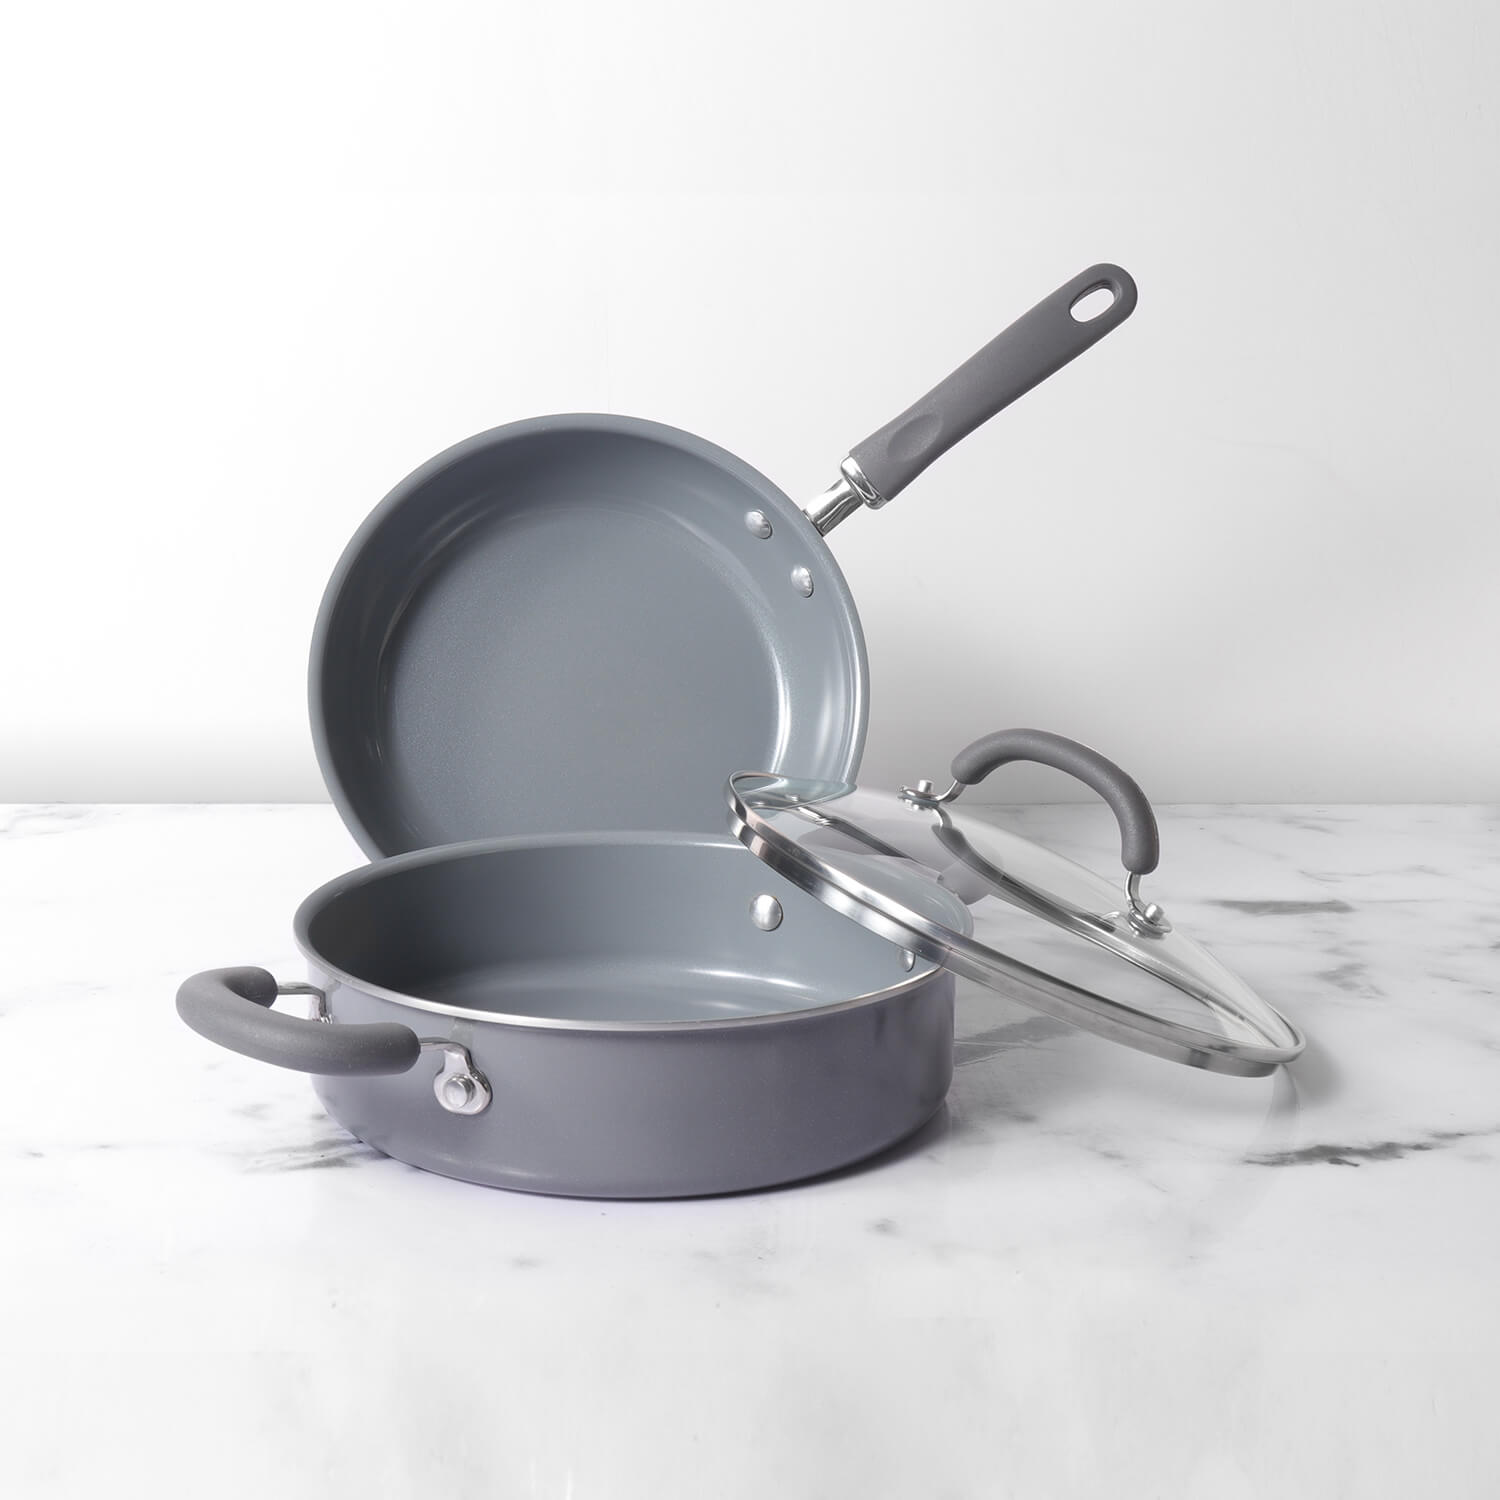 Meyer Anzen 3-Piece Set - Open Frypan + Sauteuse with Lid, 24cm - Pots and Pans